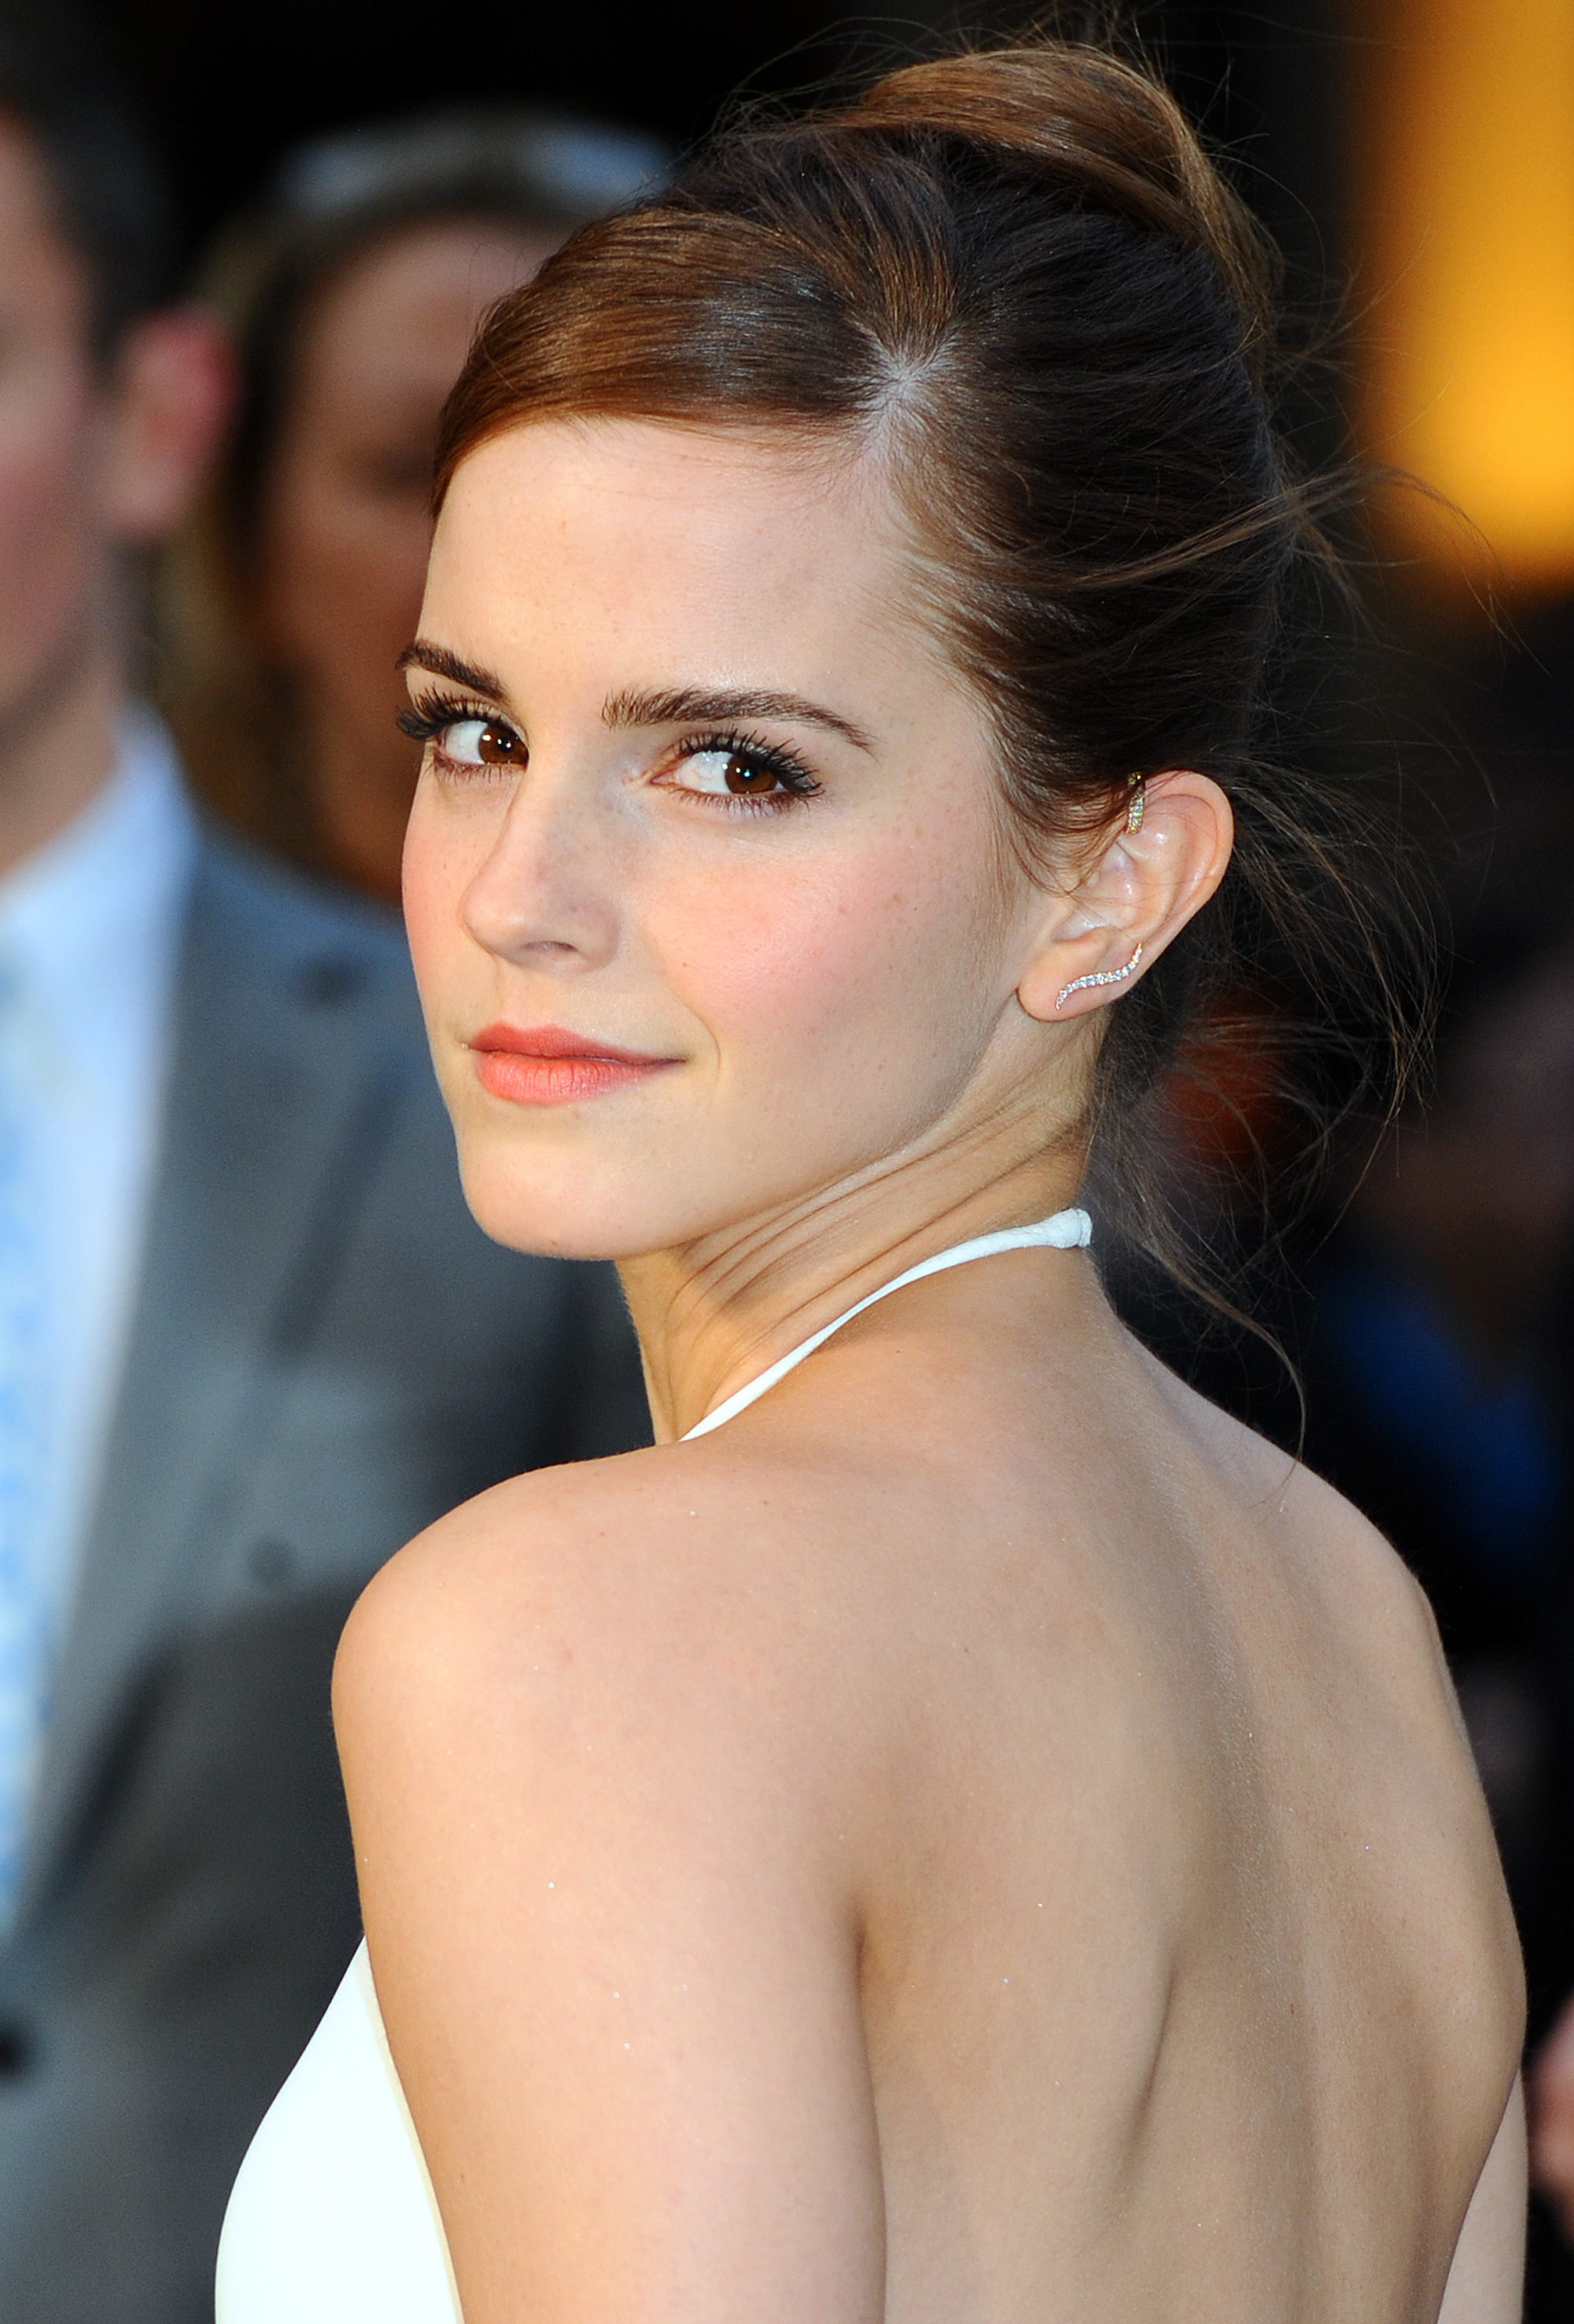 bd4d207a0e9 10 Tips For Dressing Like Emma Watson